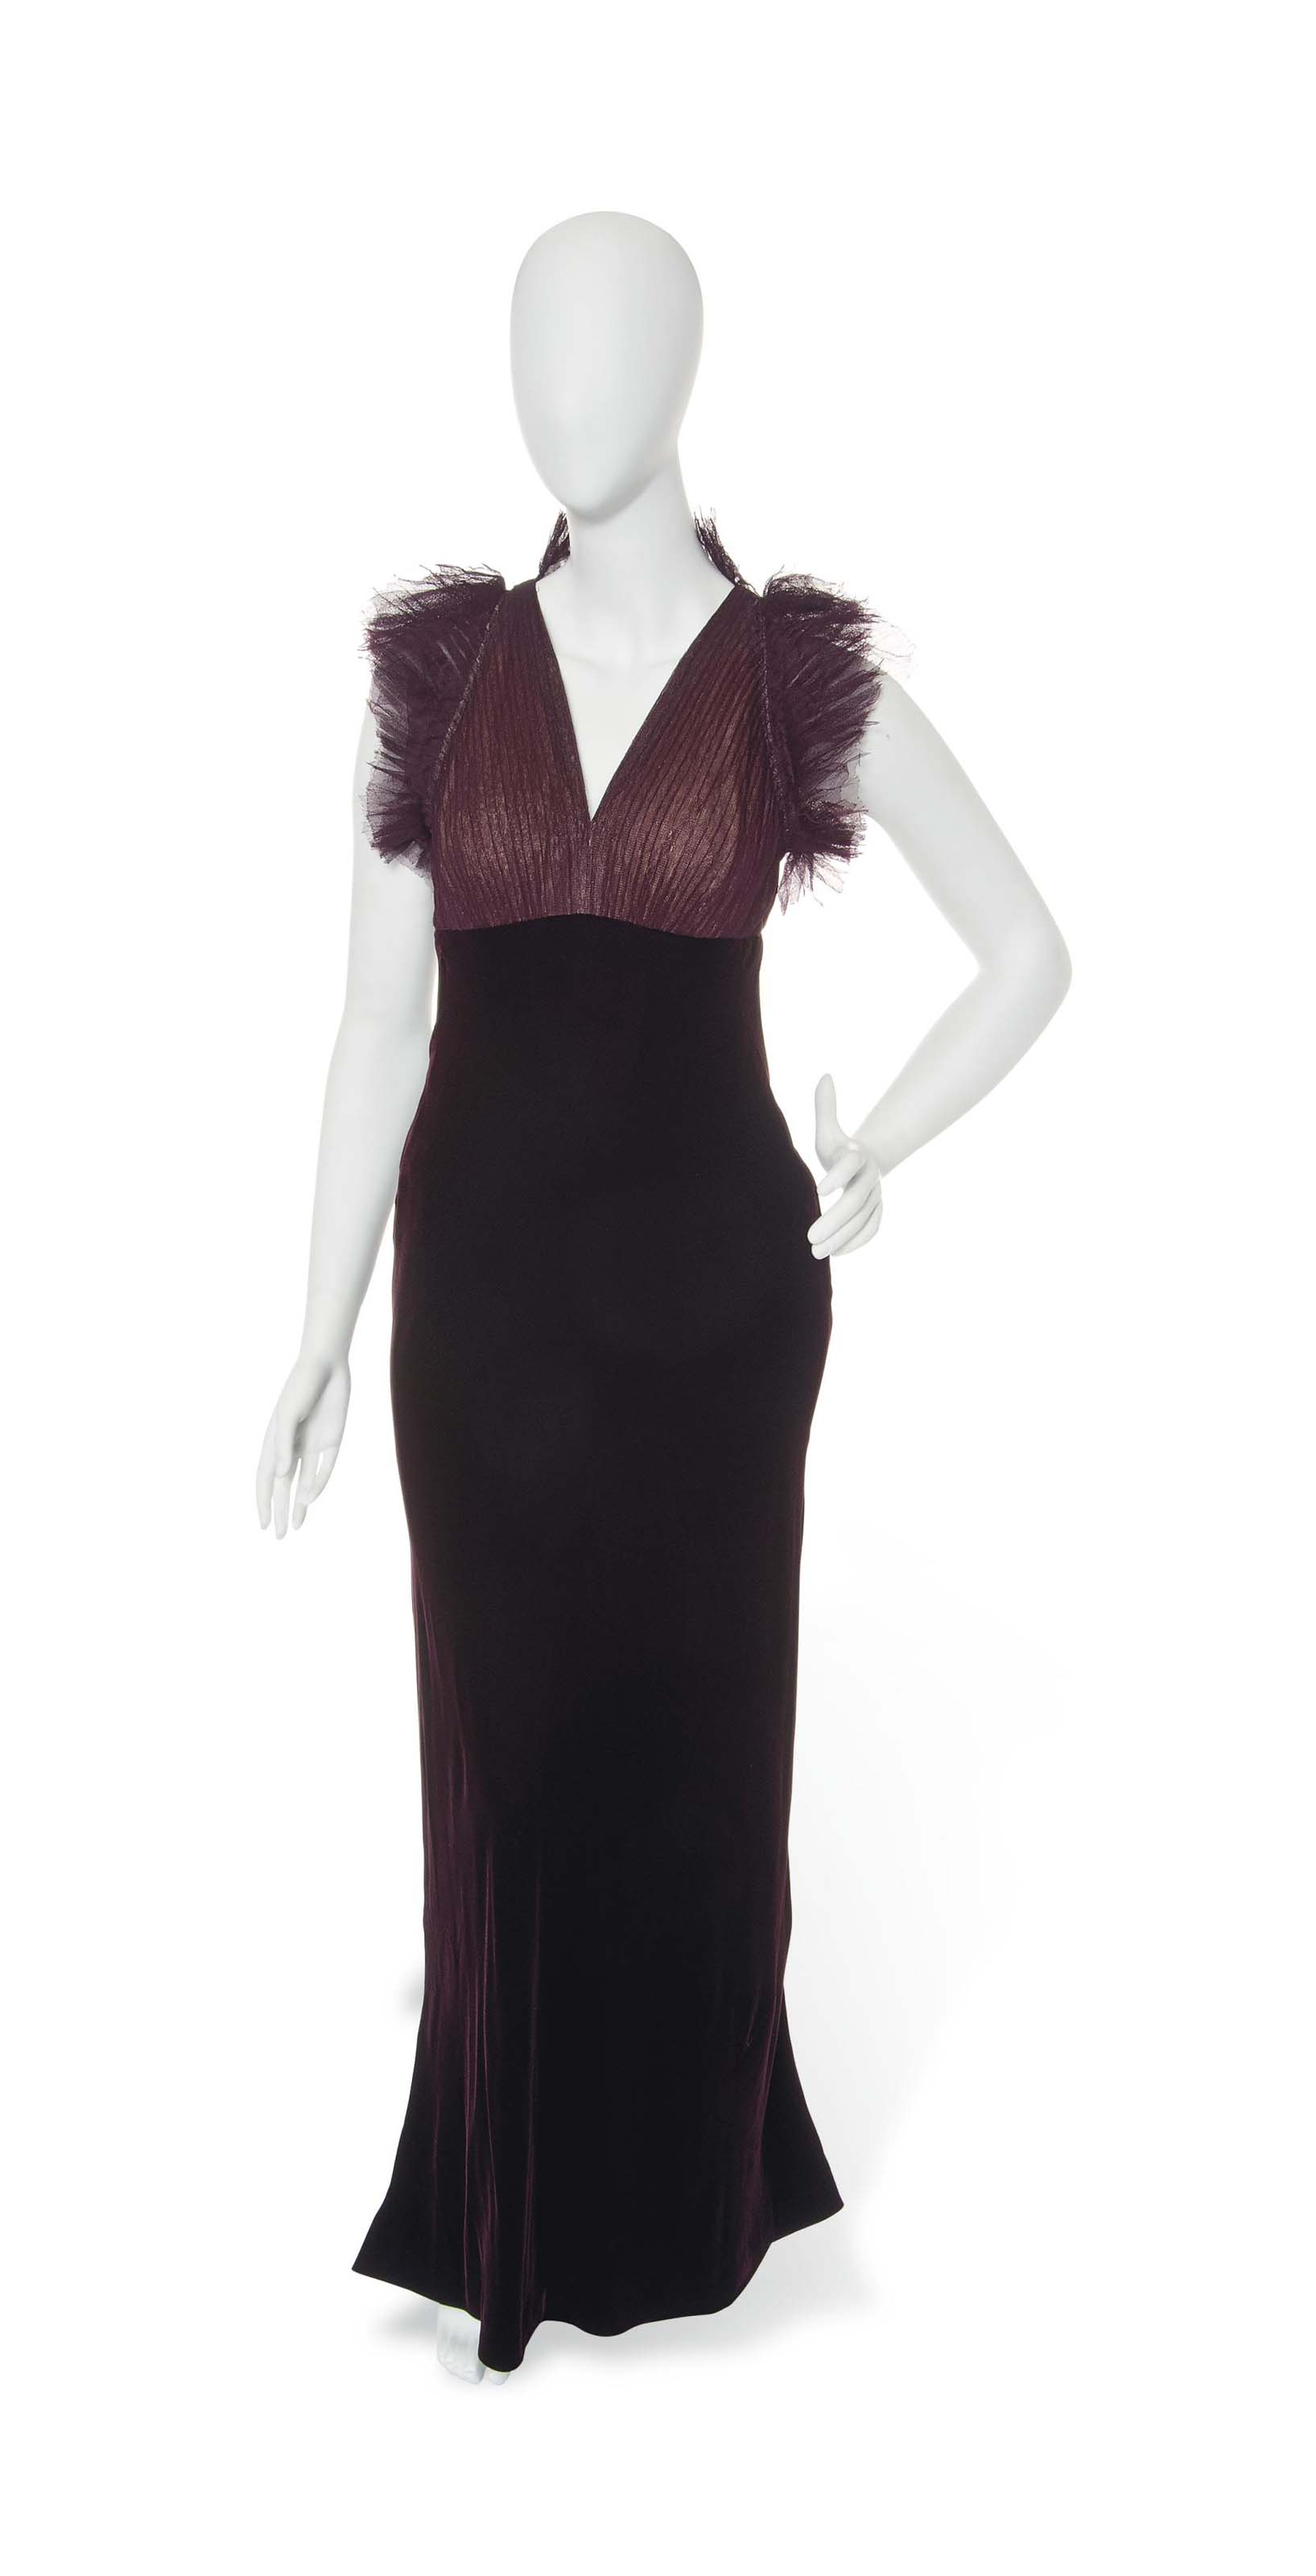 A JEAN PAUL GAULTIER BURGUNDY LACE AND VELVET EVENING GOWN AND BLACK COCKTAIL DRESS